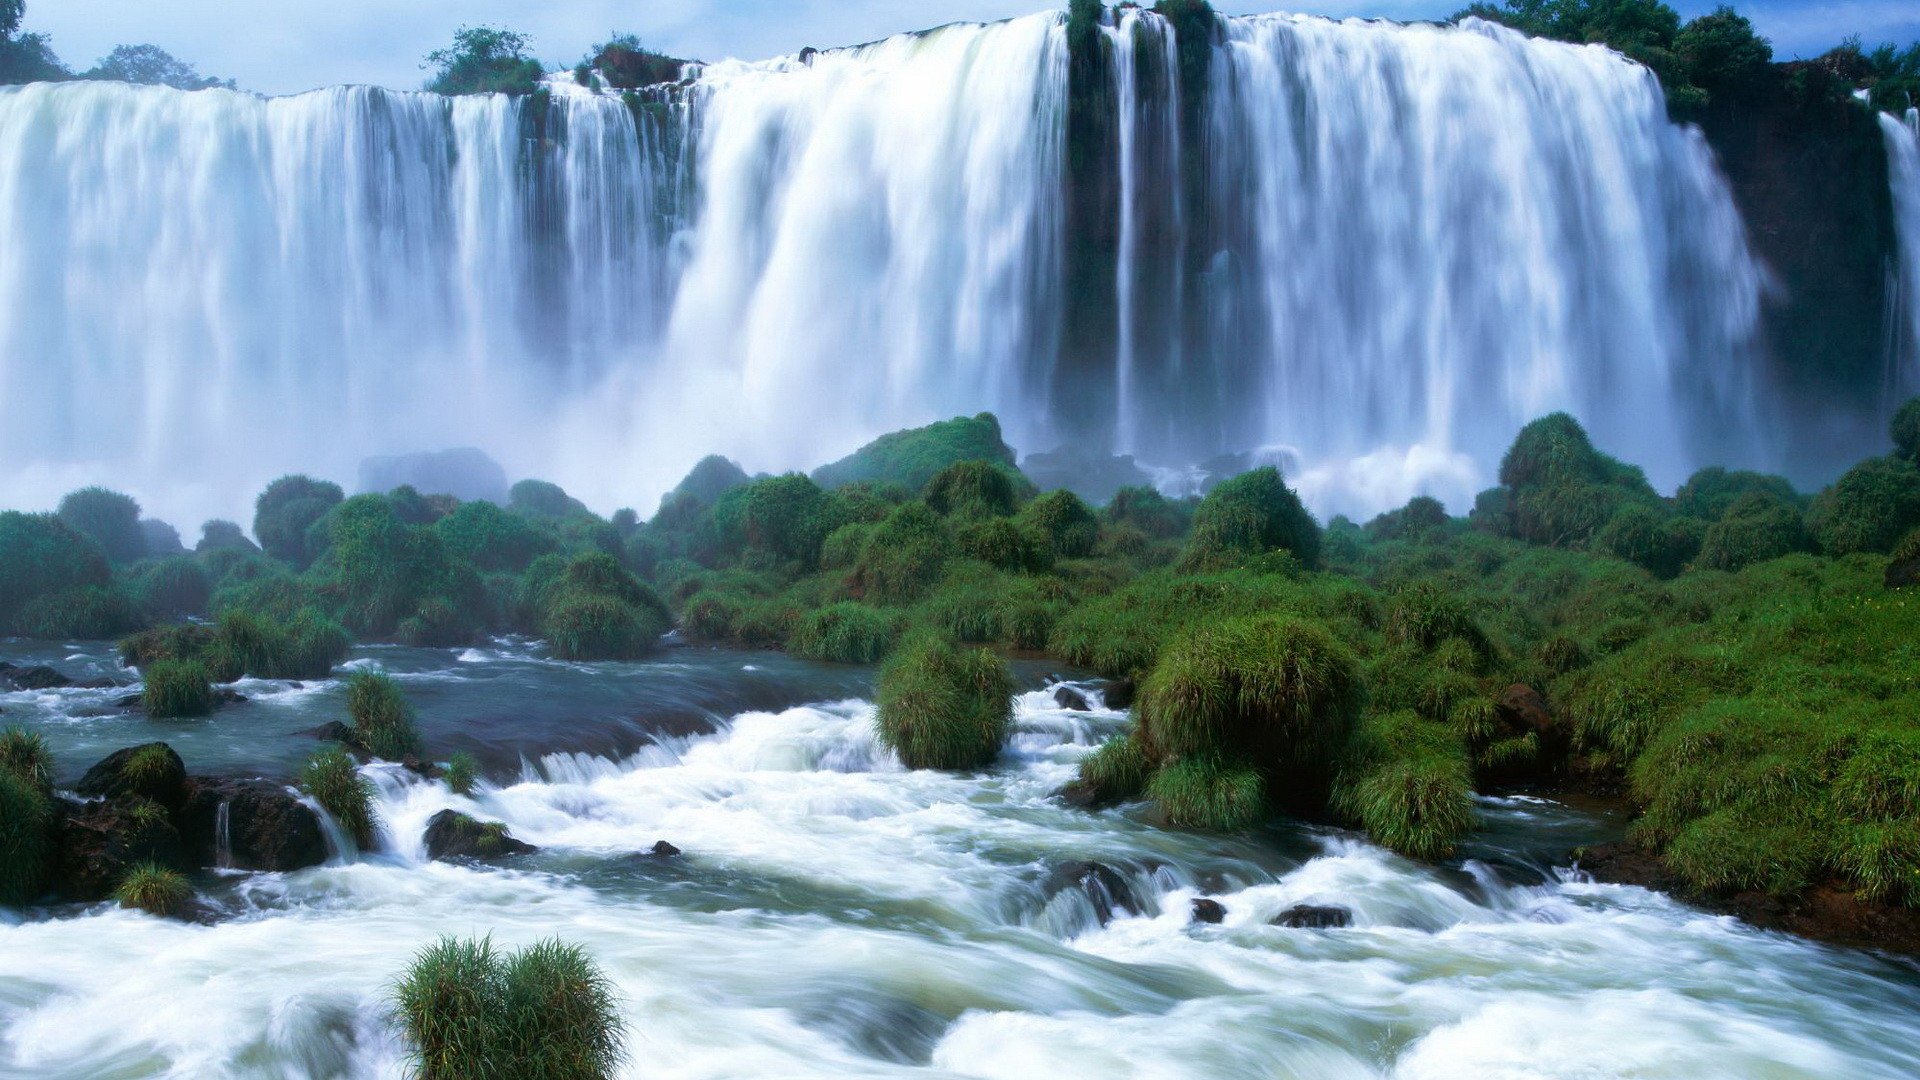 Pictures For Desktop Background Nature - Hd Wallpaper Of Waterfall - HD Wallpaper